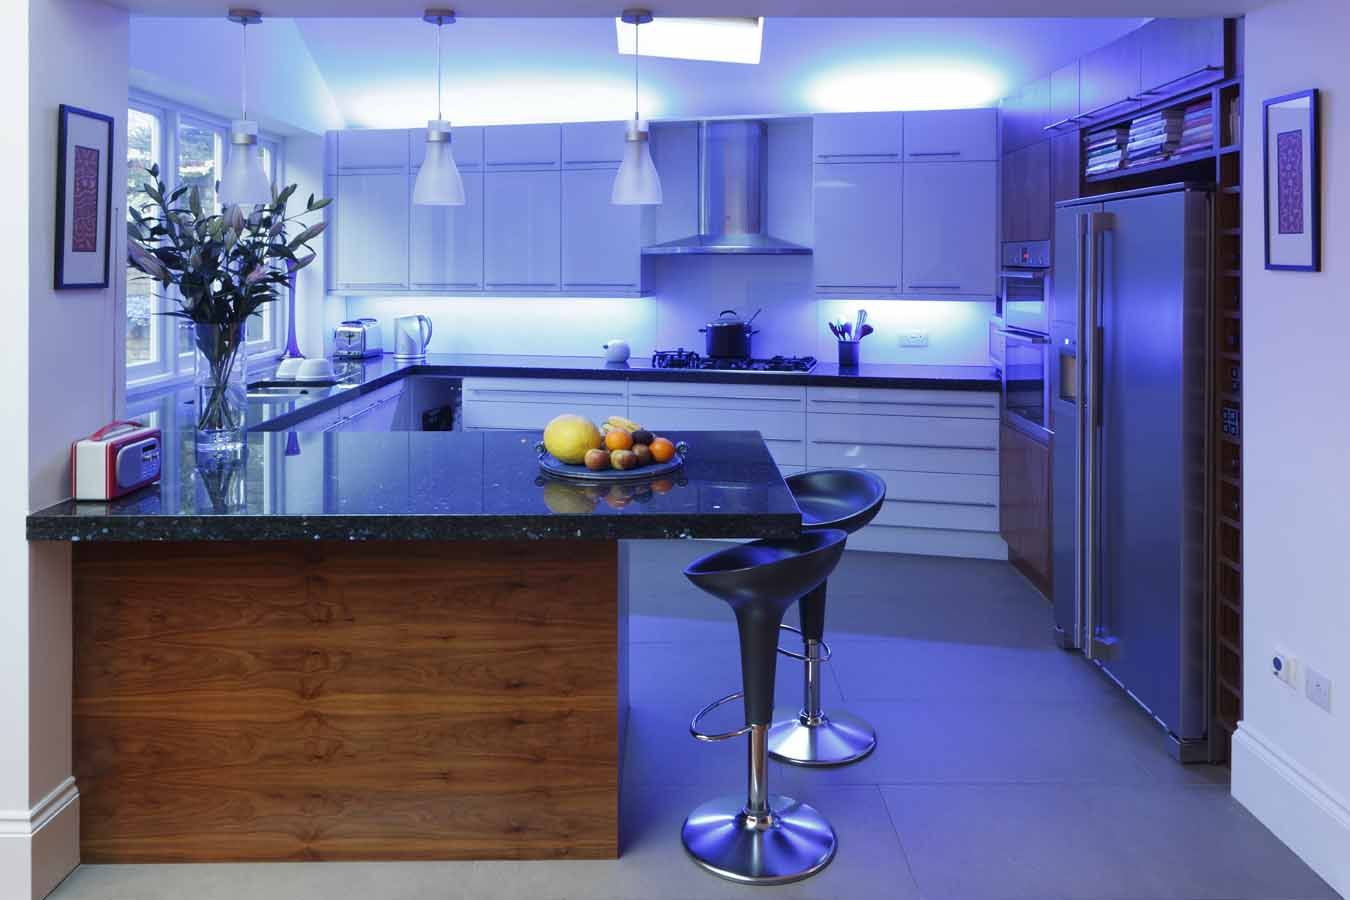 Superior How To Choose Between LED Strip Lights And LED Puck Lights Part 22